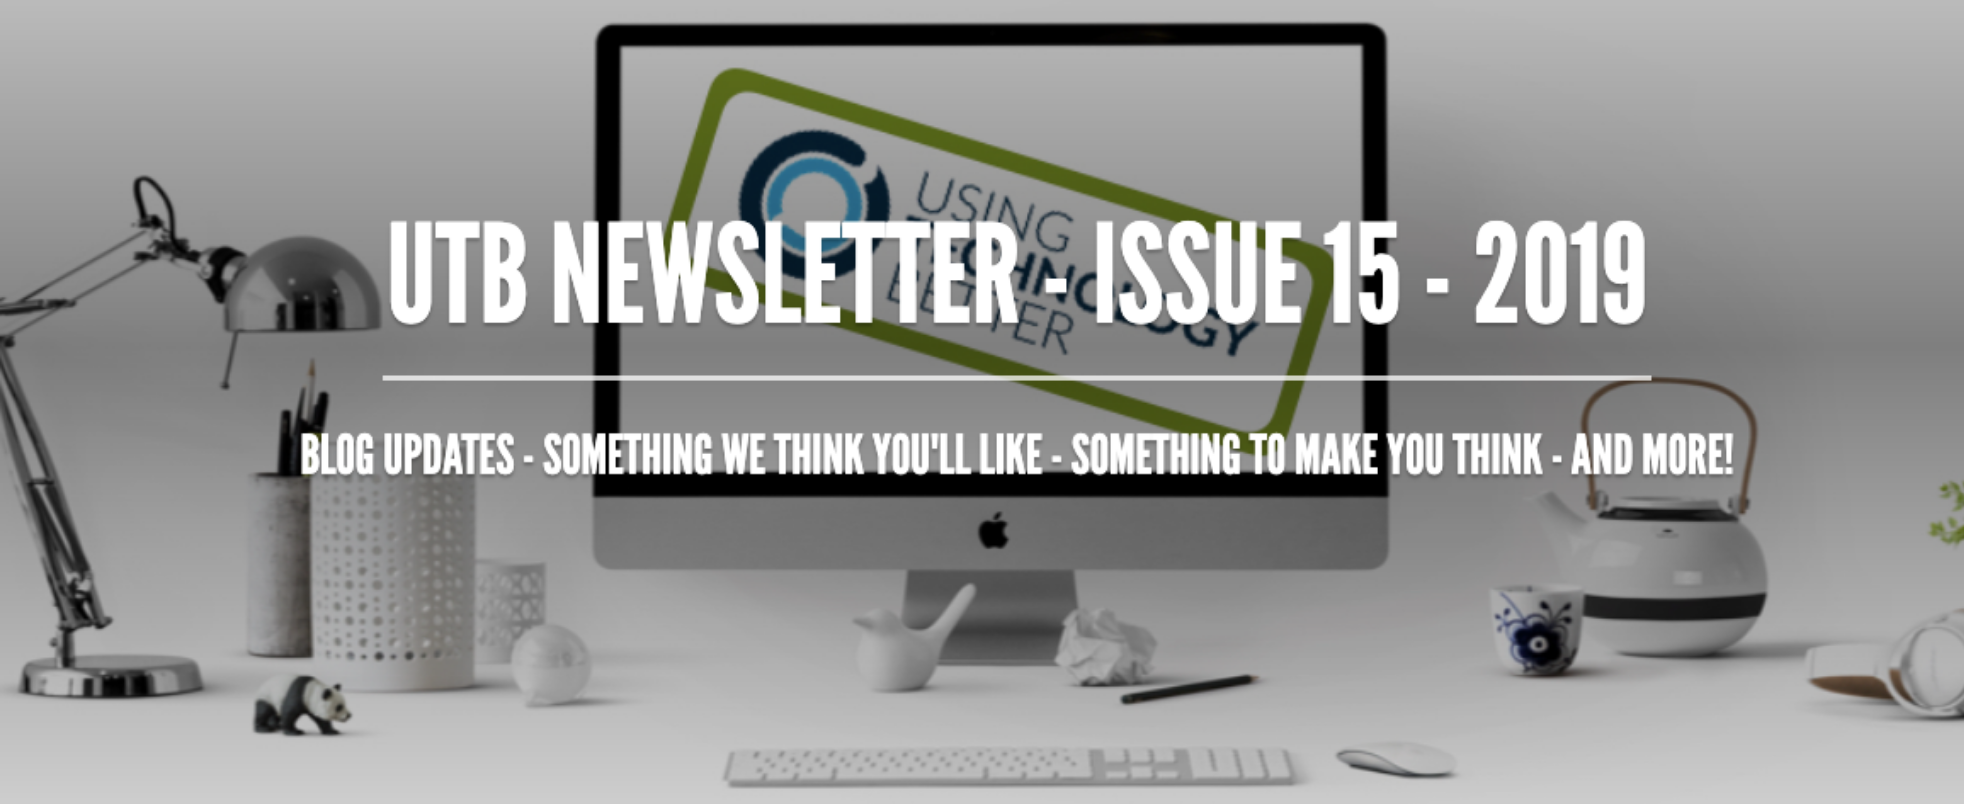 Newsletter_2019 issue 15